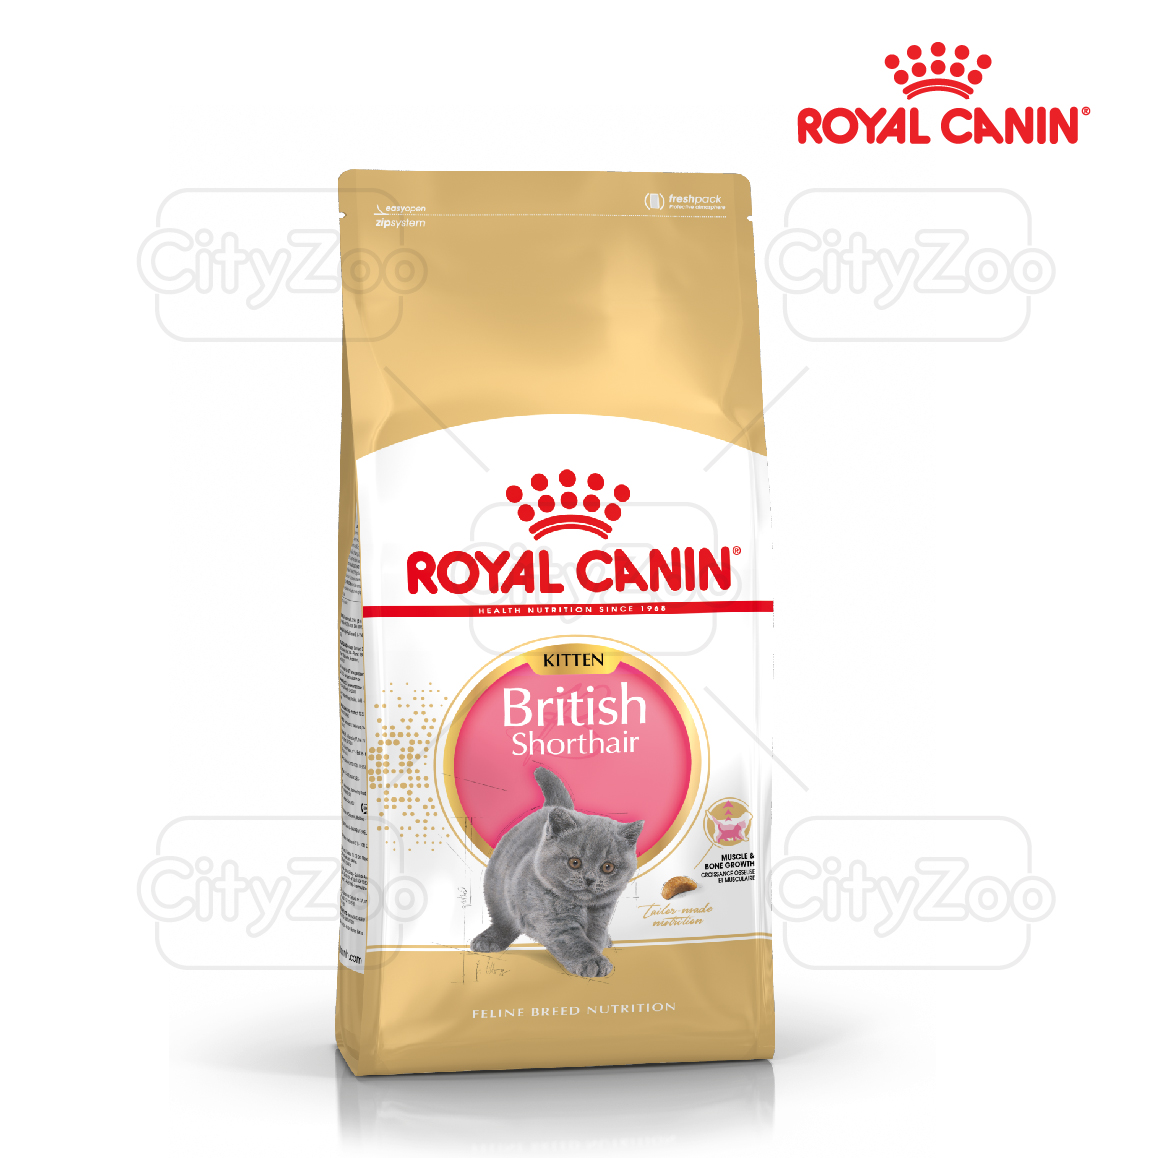 ROYAL CANIN BRITISH SHORTHAIR KITTEN 2kg